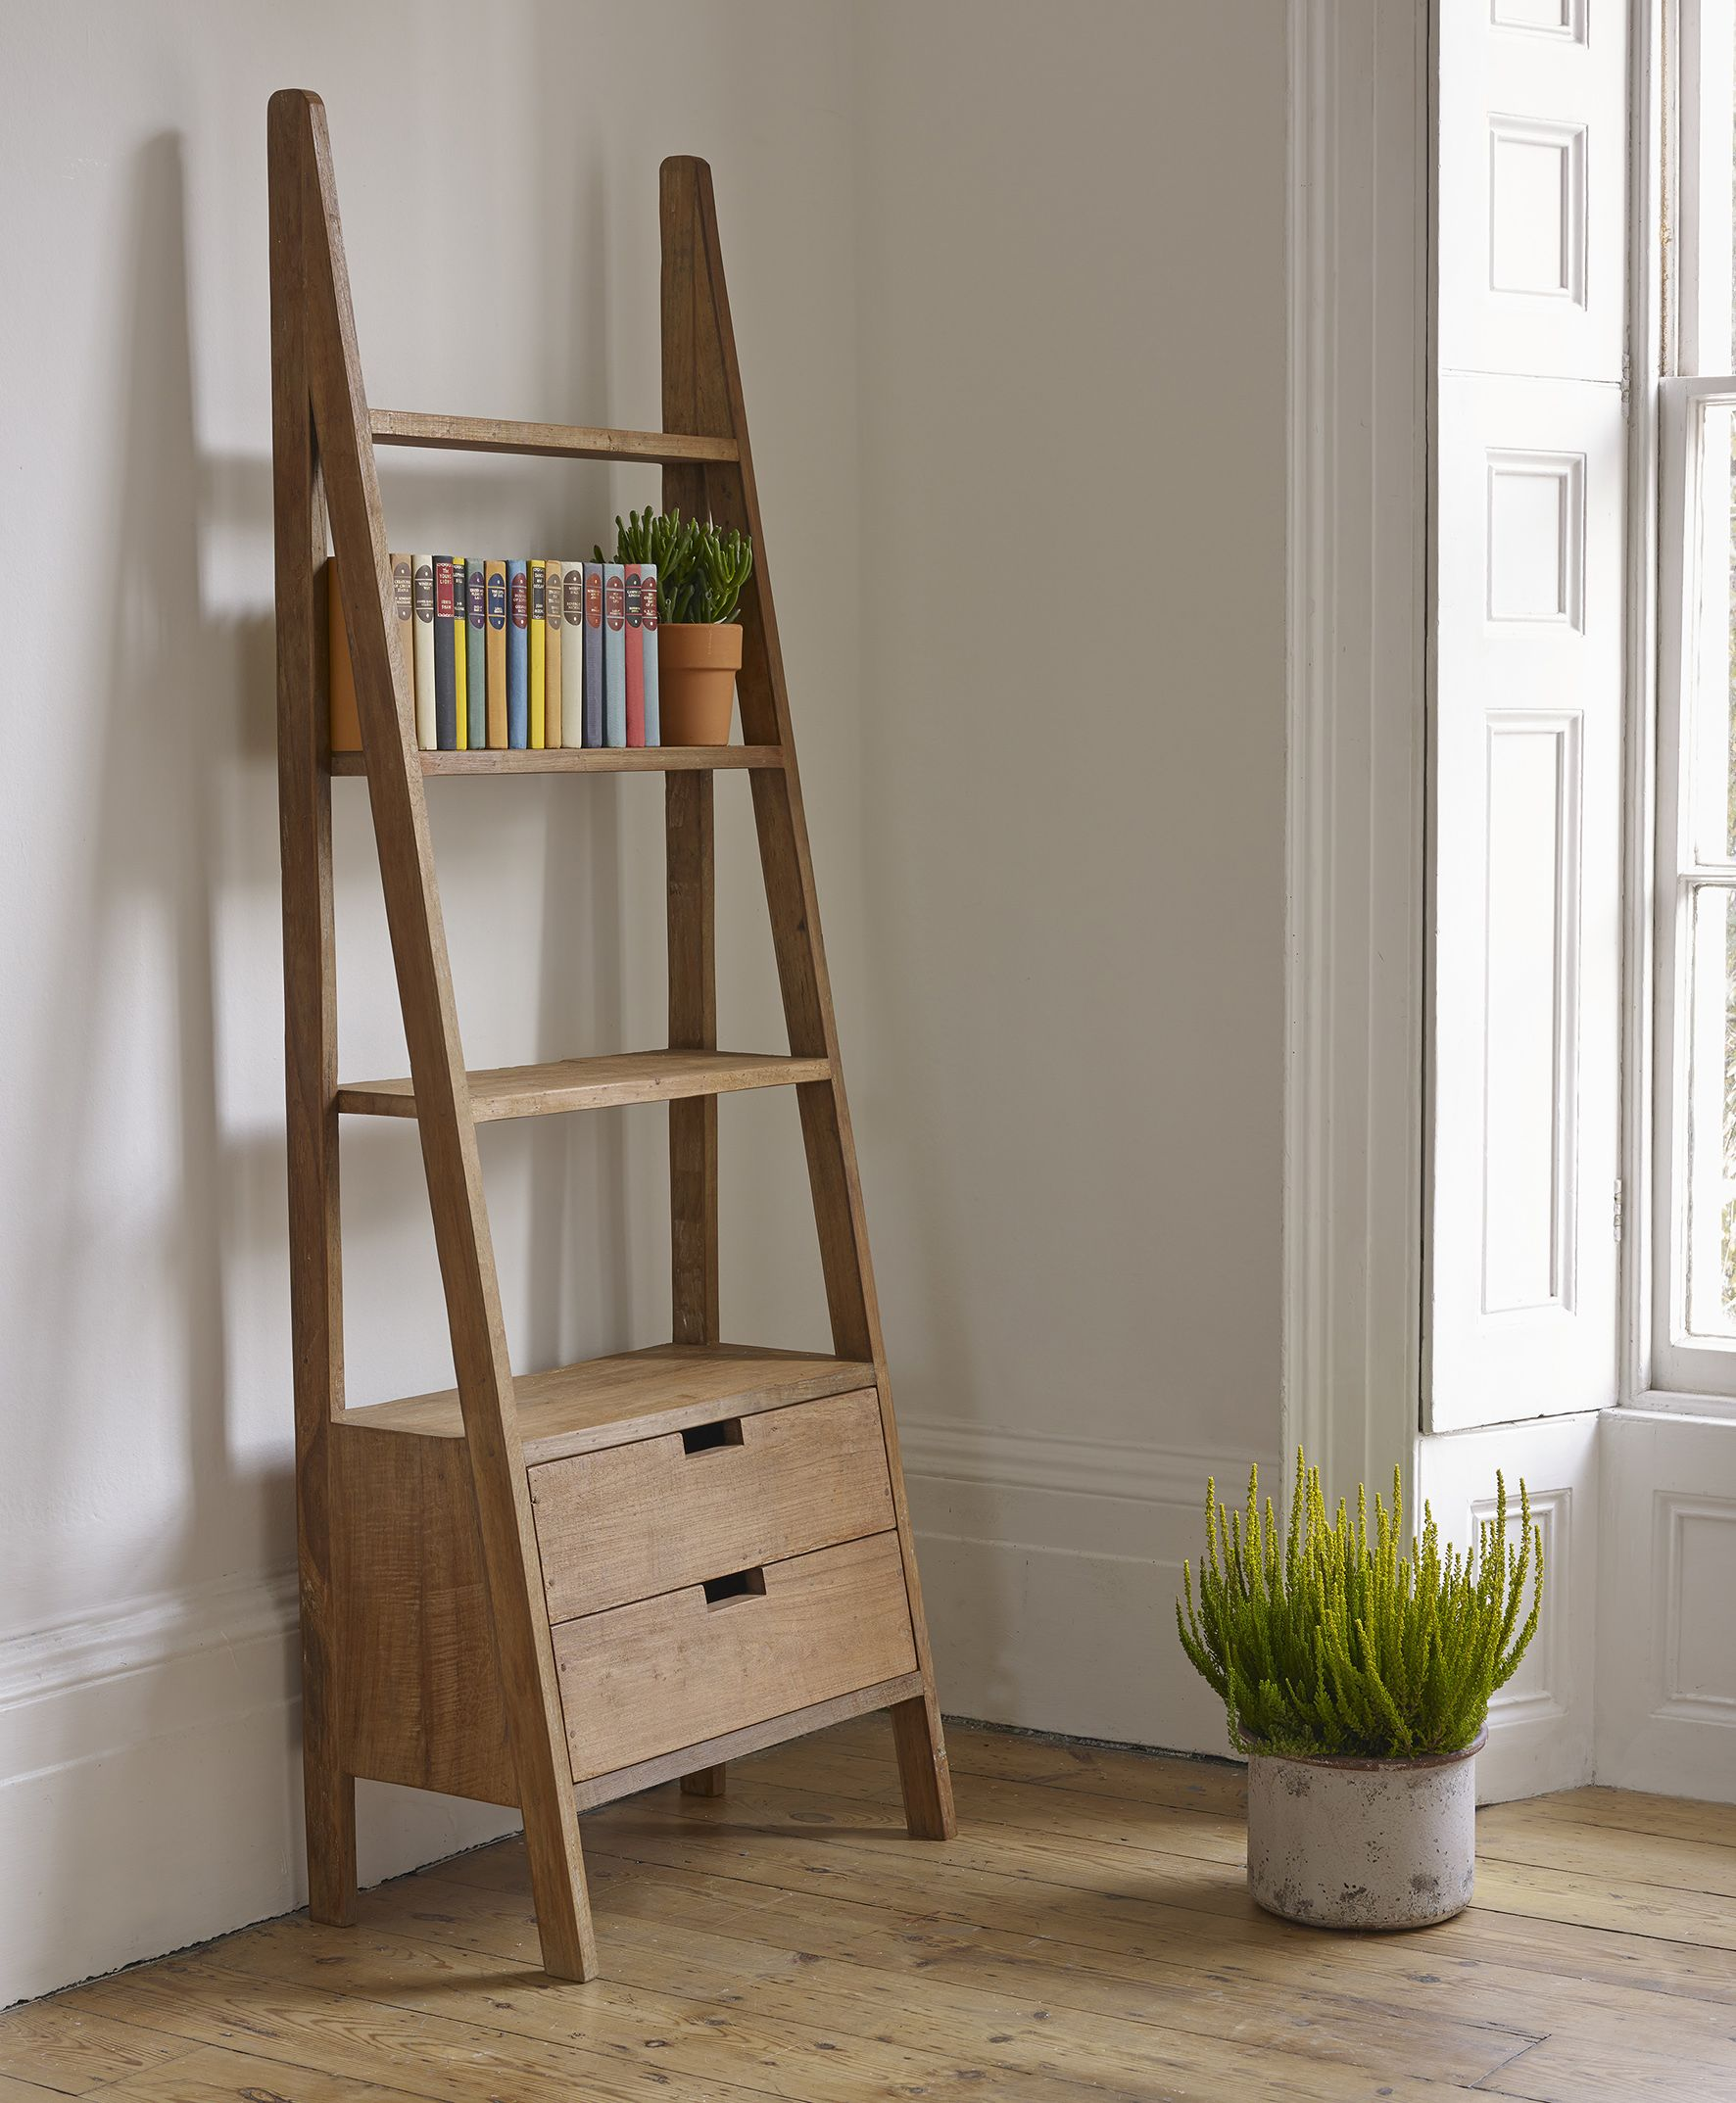 Sumatra Teak Ladder Bookcase With Drawers In 2019 Sumatra Collection Lombok Ladder Bookshelf Ladder Bookcase Bookcase With Drawers